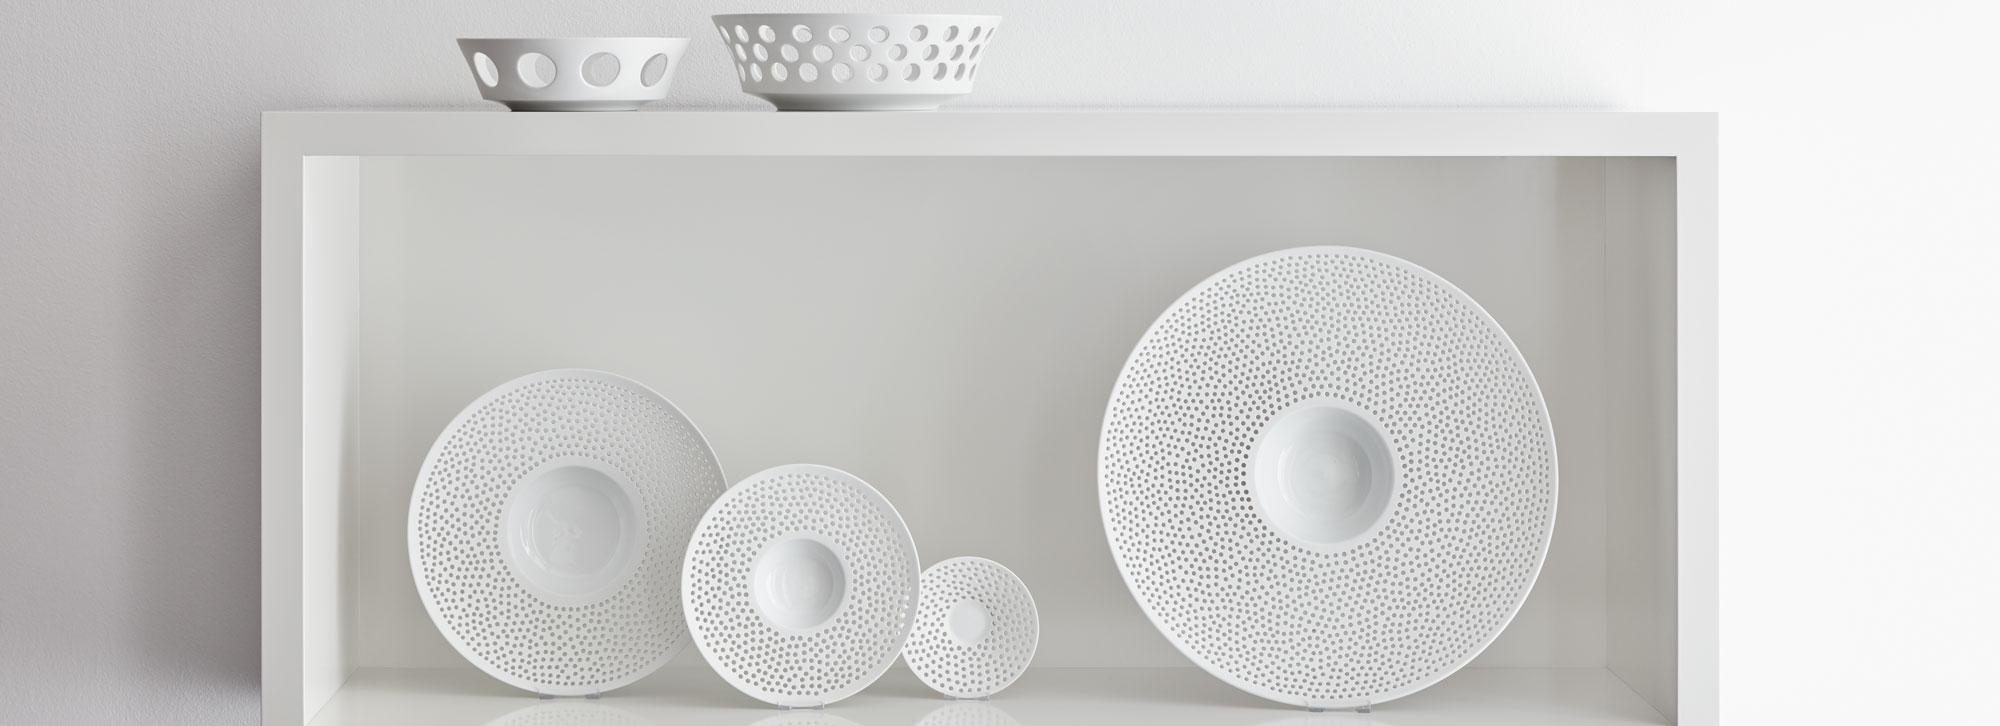 German porcelain maker Hering Berlinu0027s refined porcelain dinnerware collections are designed by Stefanie Hering whose deep passion for the craft led her to ...  sc 1 st  Gracious Style & Hering Berlin German Porcelain Dinnerware | Gracious Style